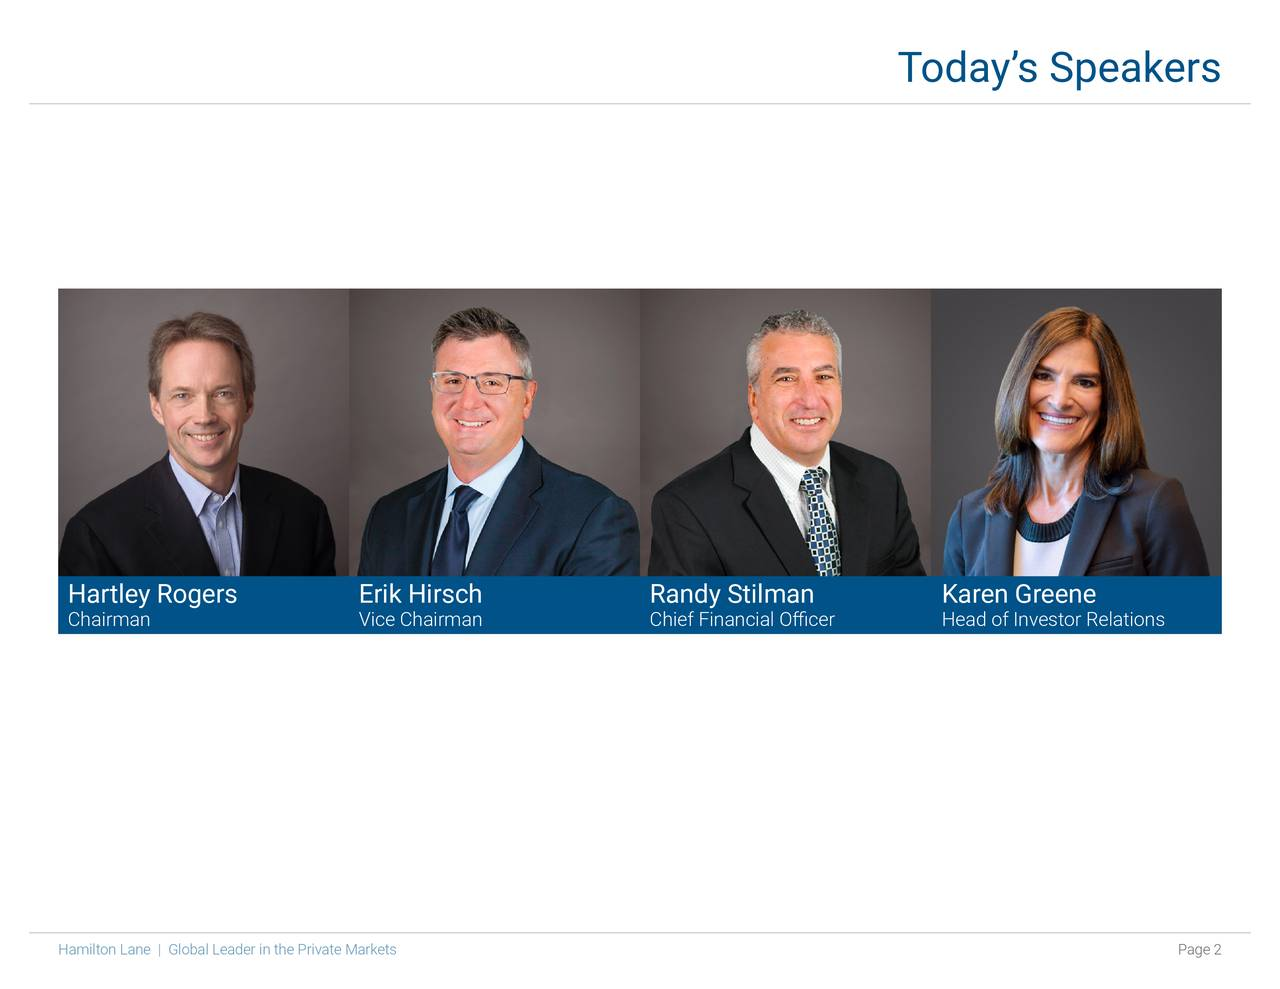 Hartley Rogers Erik Hirsch Randy Stilman Karen Greene Chairman Vice Chairman Chief Financial Officer Head of Investor Relations Hamilton Lane   Global Leader in the Private Markets Page 2